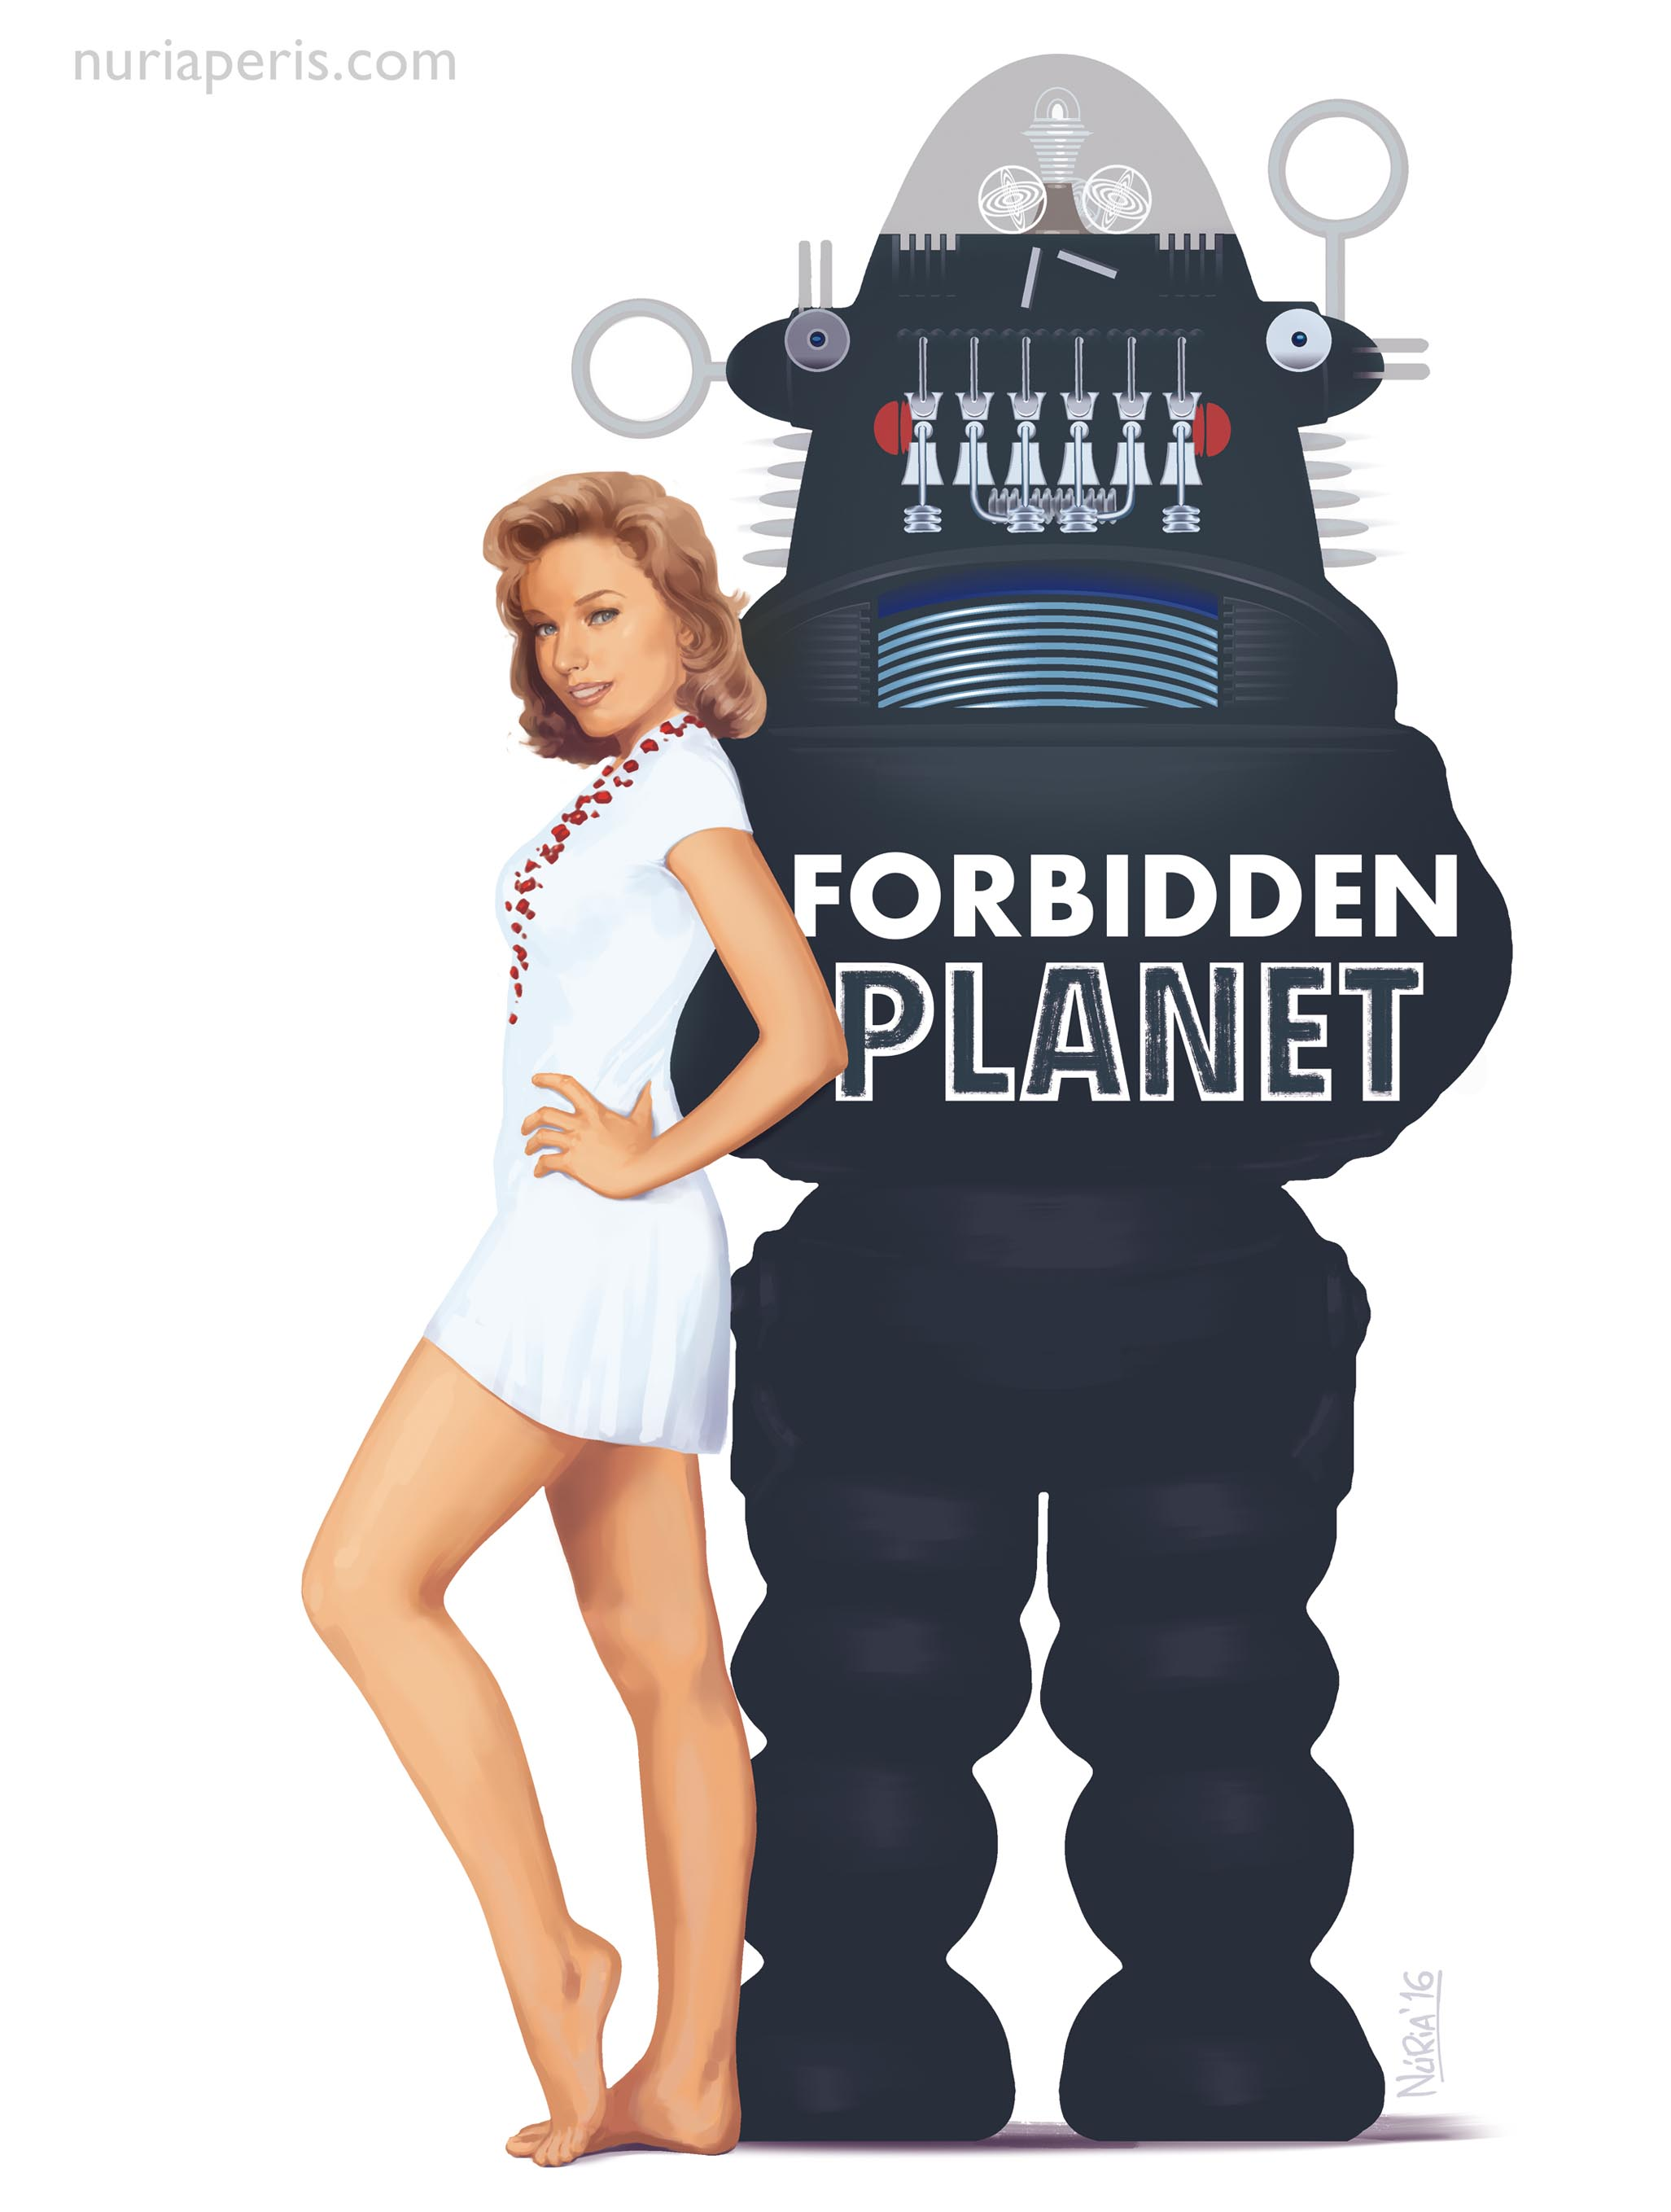 Forbidden_Planet_Nuria_Peris